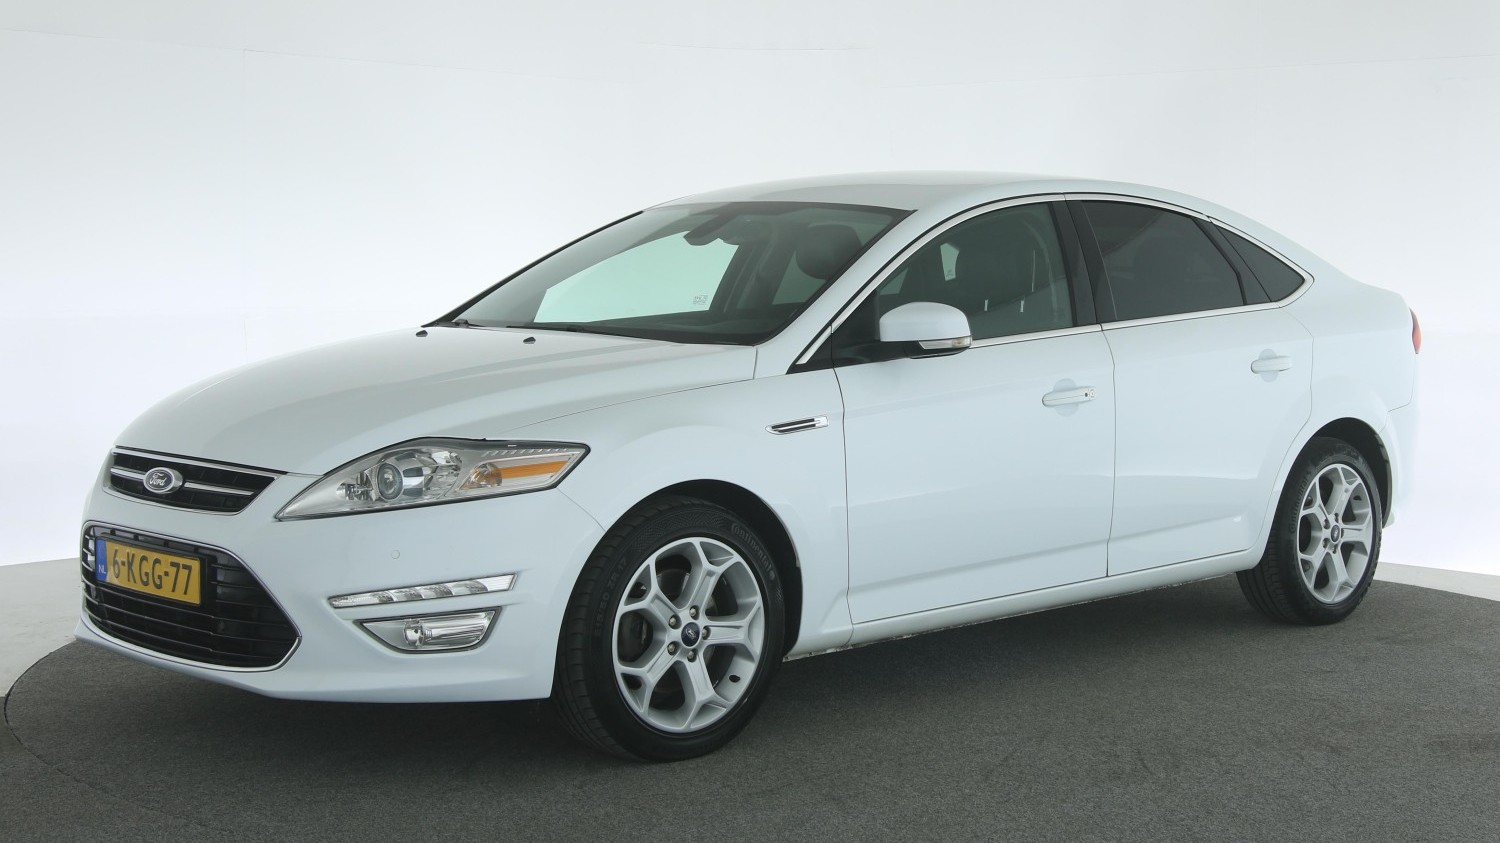 Ford Mondeo Hatchback 2013 6-KGG-77 1